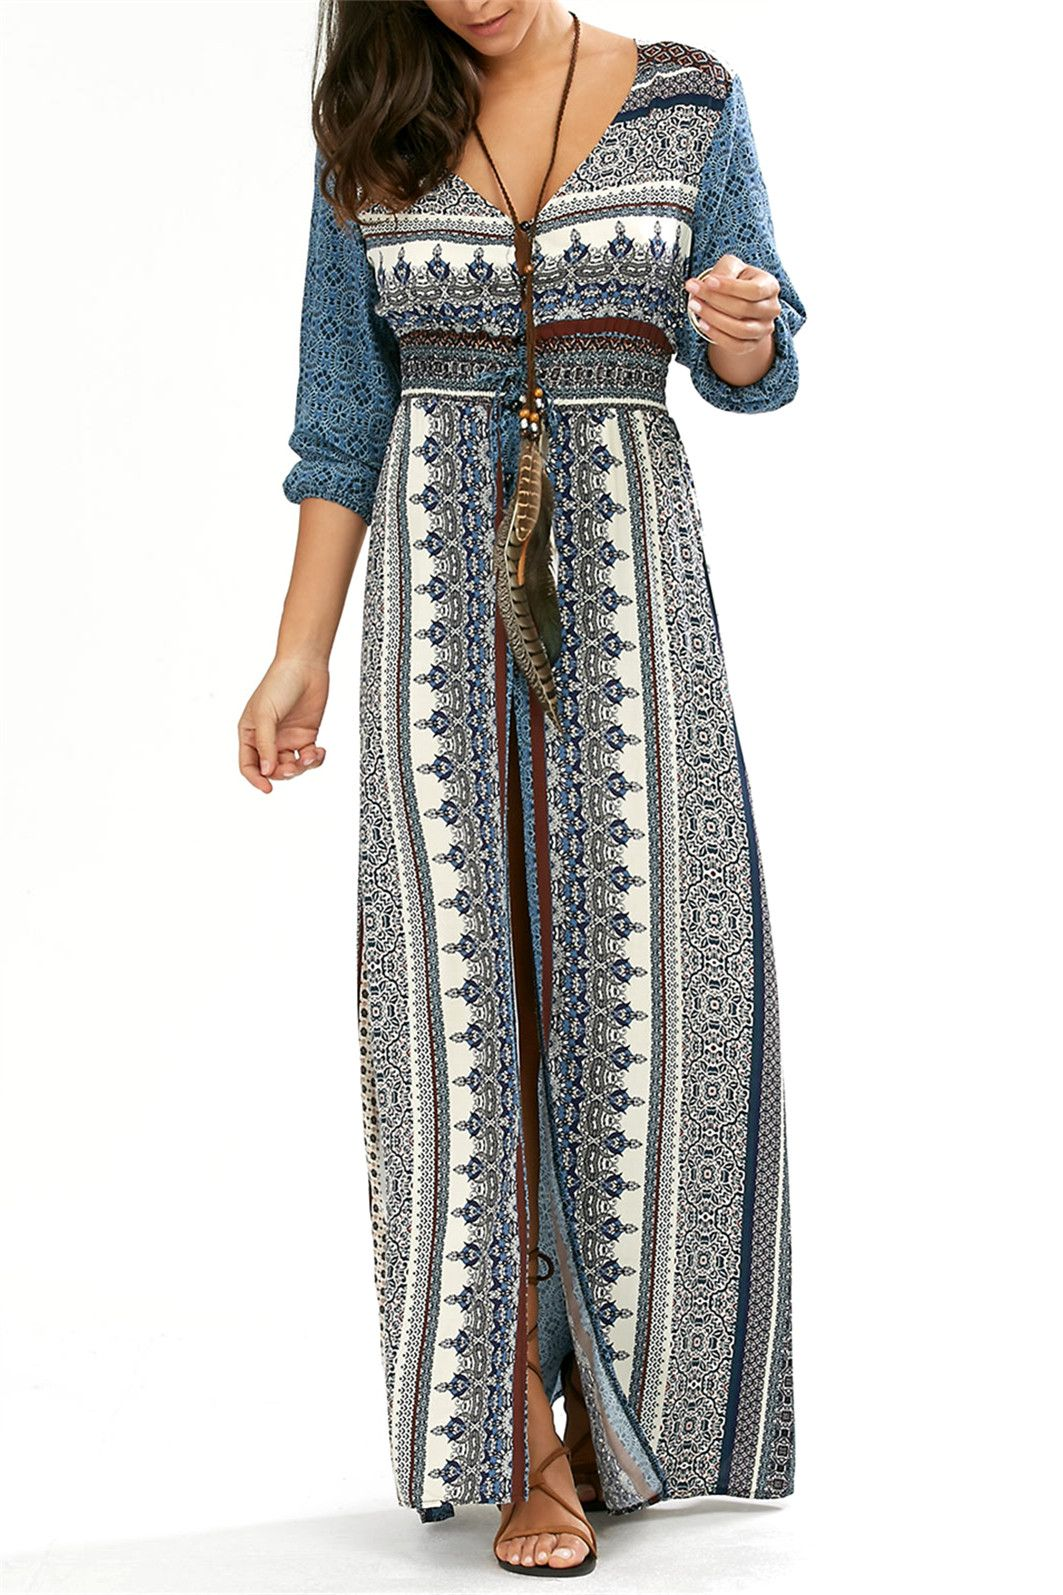 Empire waist button down flowy beach bohemian maxi dress blue xl